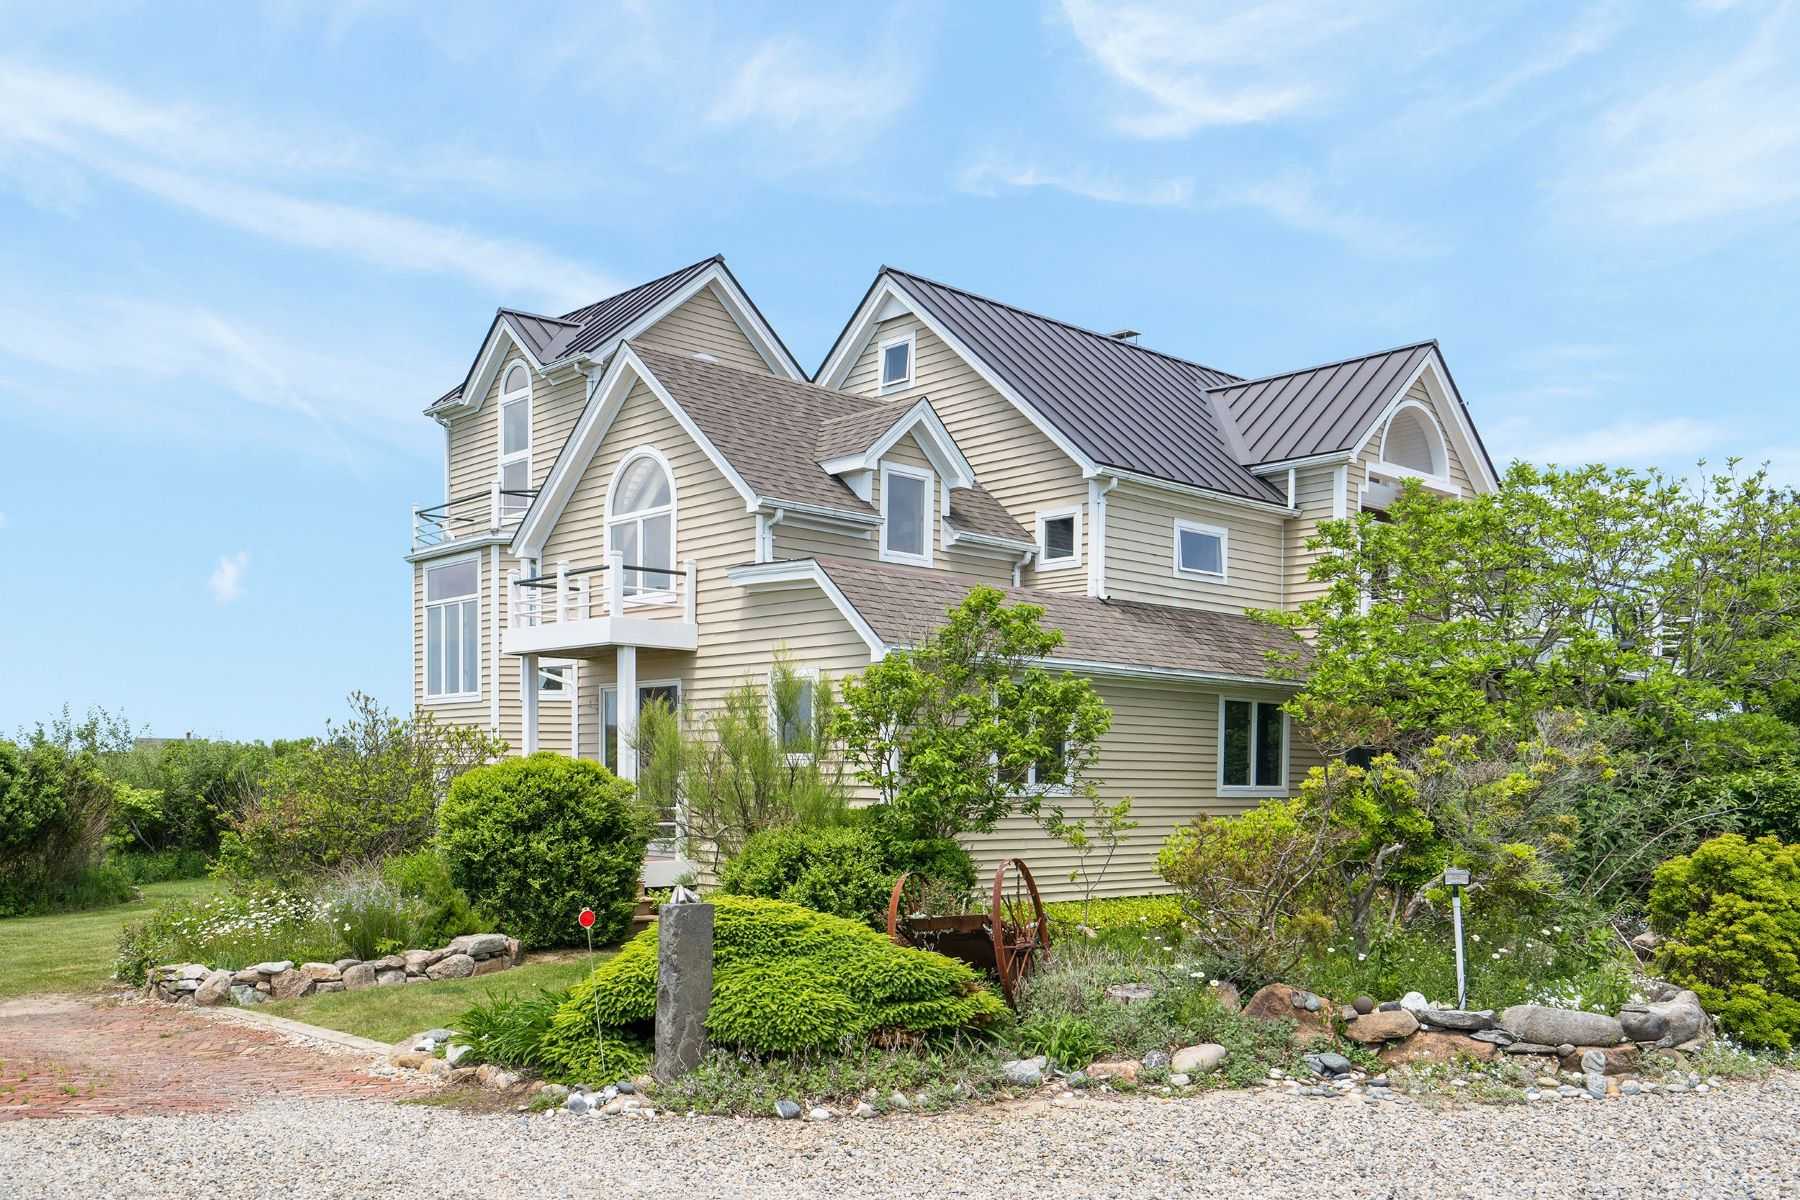 Single Family Homes for Sale at SALT POND SERENITY 1751 Corn Neck Road Block Island, Rhode Island 02807 United States